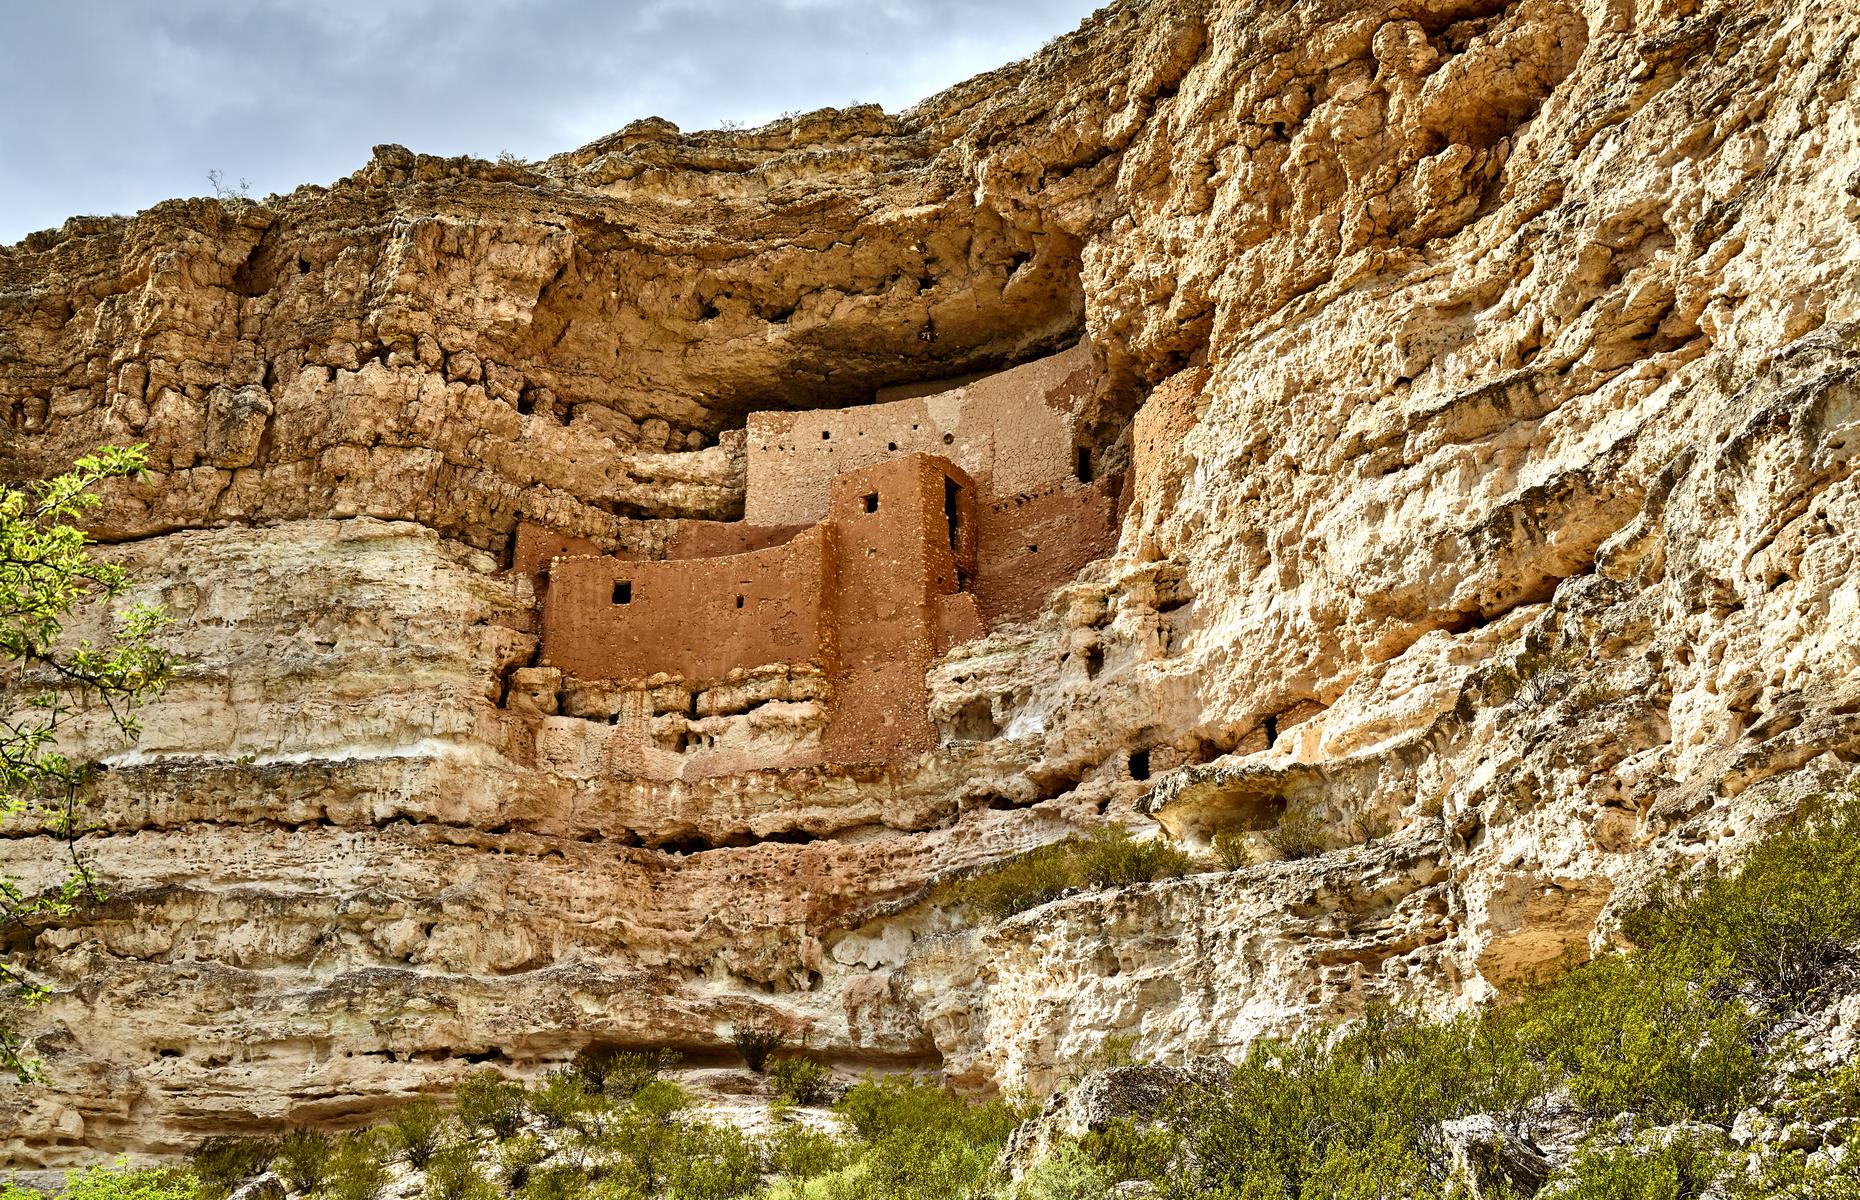 Slide 19 of 27: Locations don't come much more impressive than the perch occupied by this high-rise building, tucked into limestone cliffs in the desert of Camp Verde. Montezuma Castle was built and occupied by the Sinagua people between AD 1100 and 1425, and used as an abode with 20 rooms.